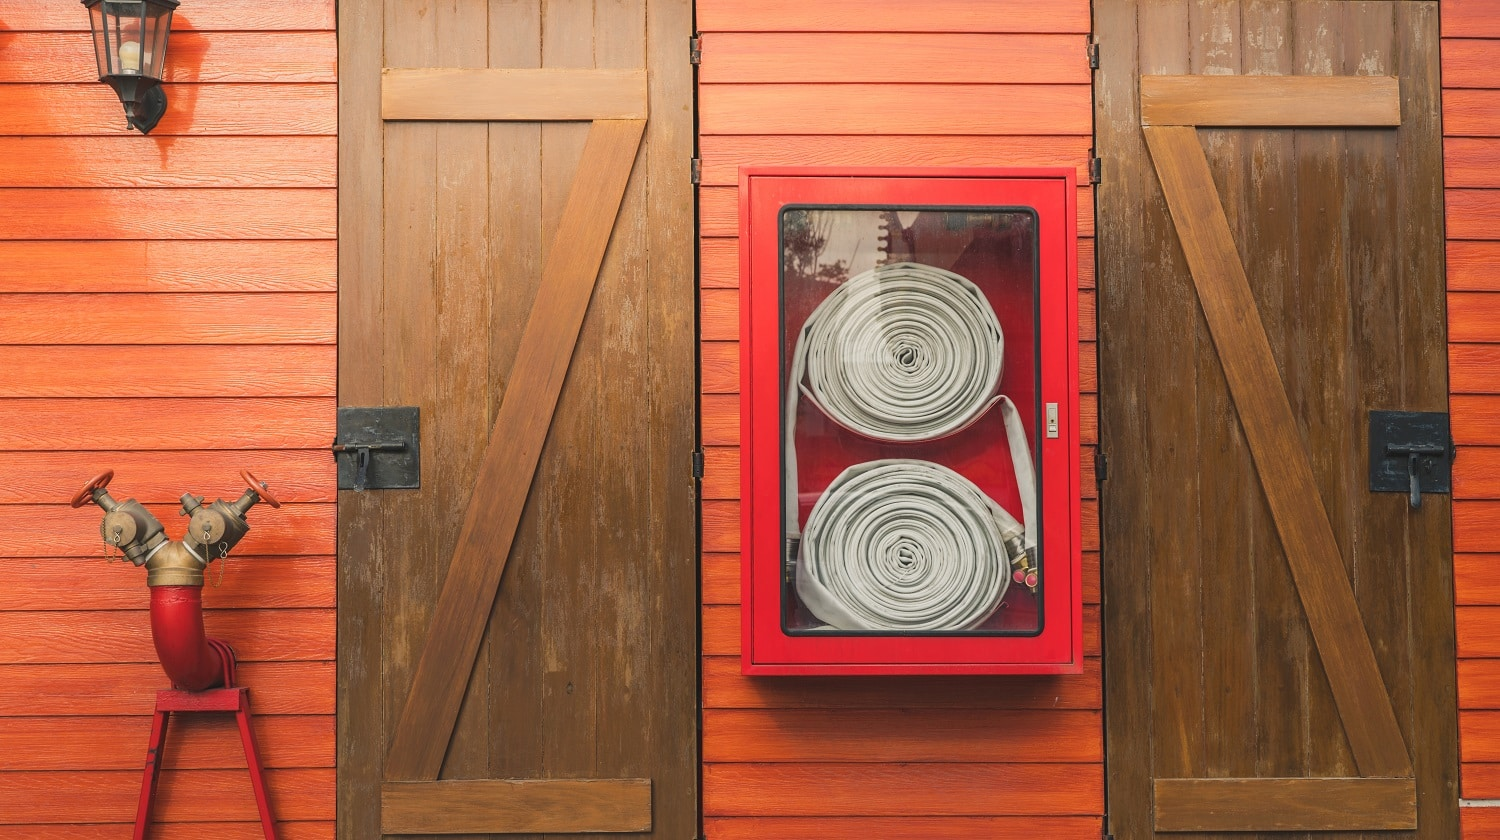 Fire hose in red cabinet hanging on orange wooden wall. Fire emergency equipment box for safety and security system. Fire safety pump. Deluge system of firefighting system. Plumbing fire protection.